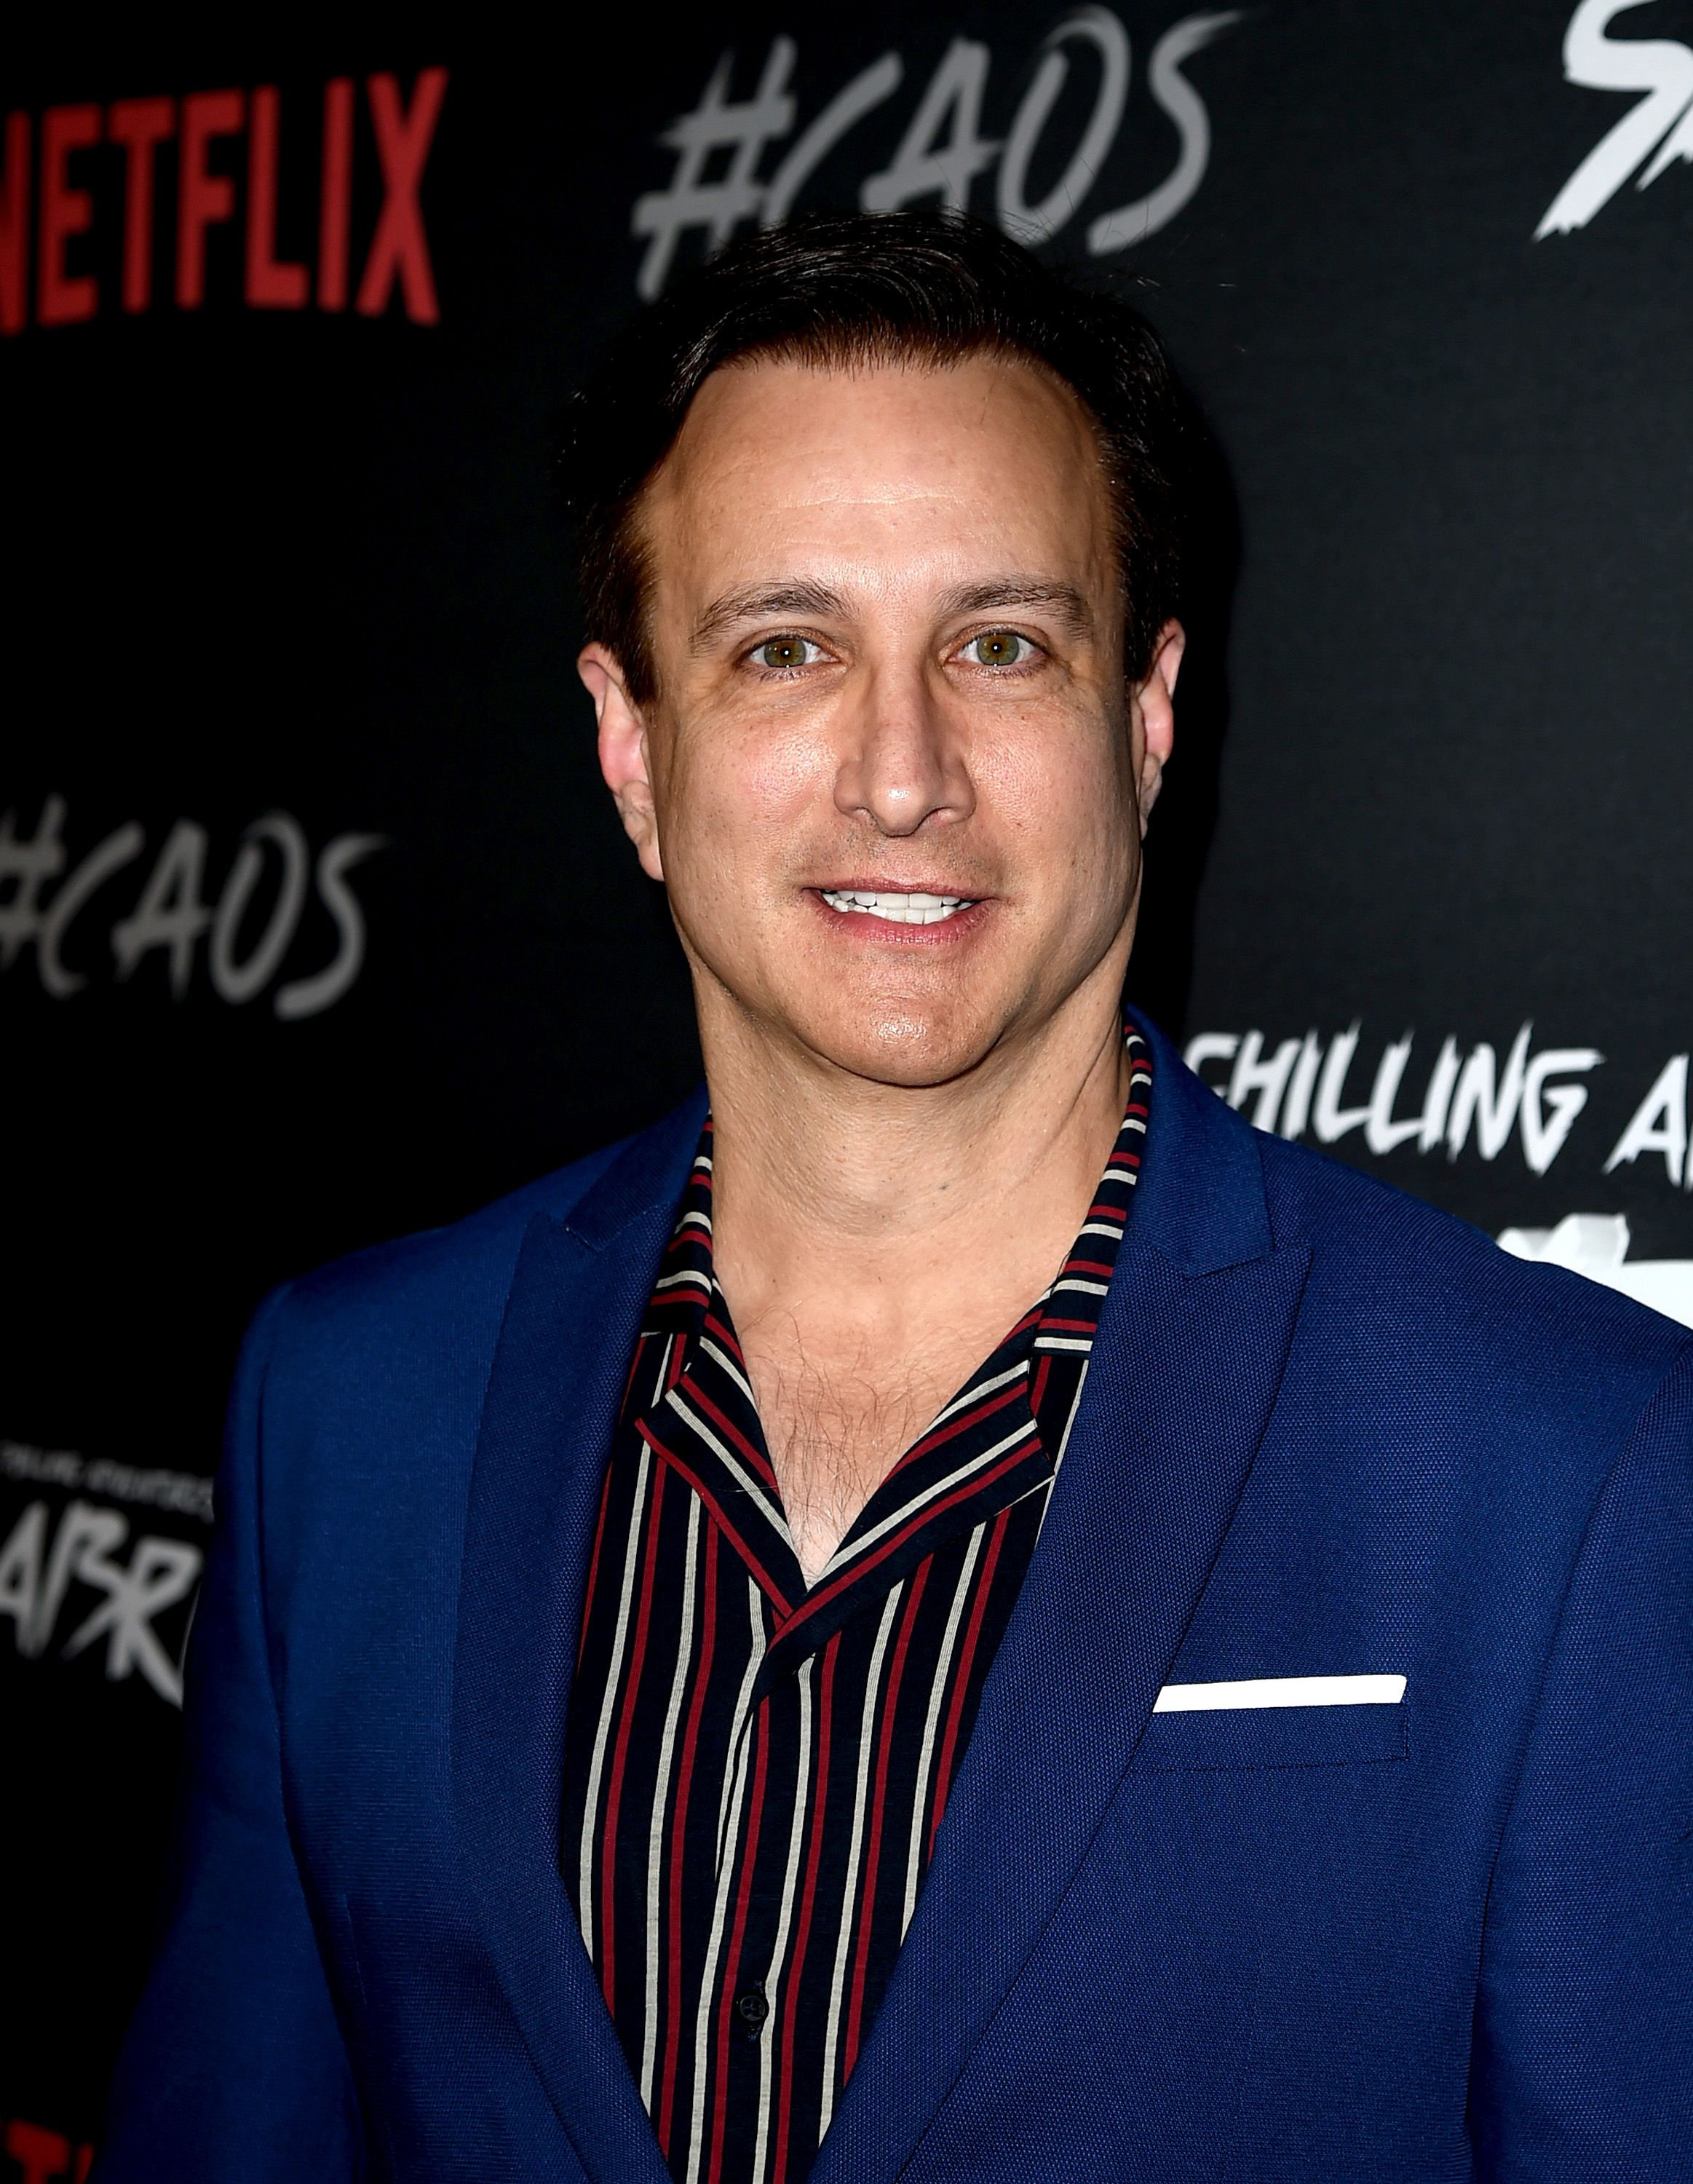 """Bronson Pinchot at the premiere of Netflix's """"Chilling Adventures Of Sabrina"""" at the Hollywood Athletic Club on October 19, 2018 in Los Angeles, California 